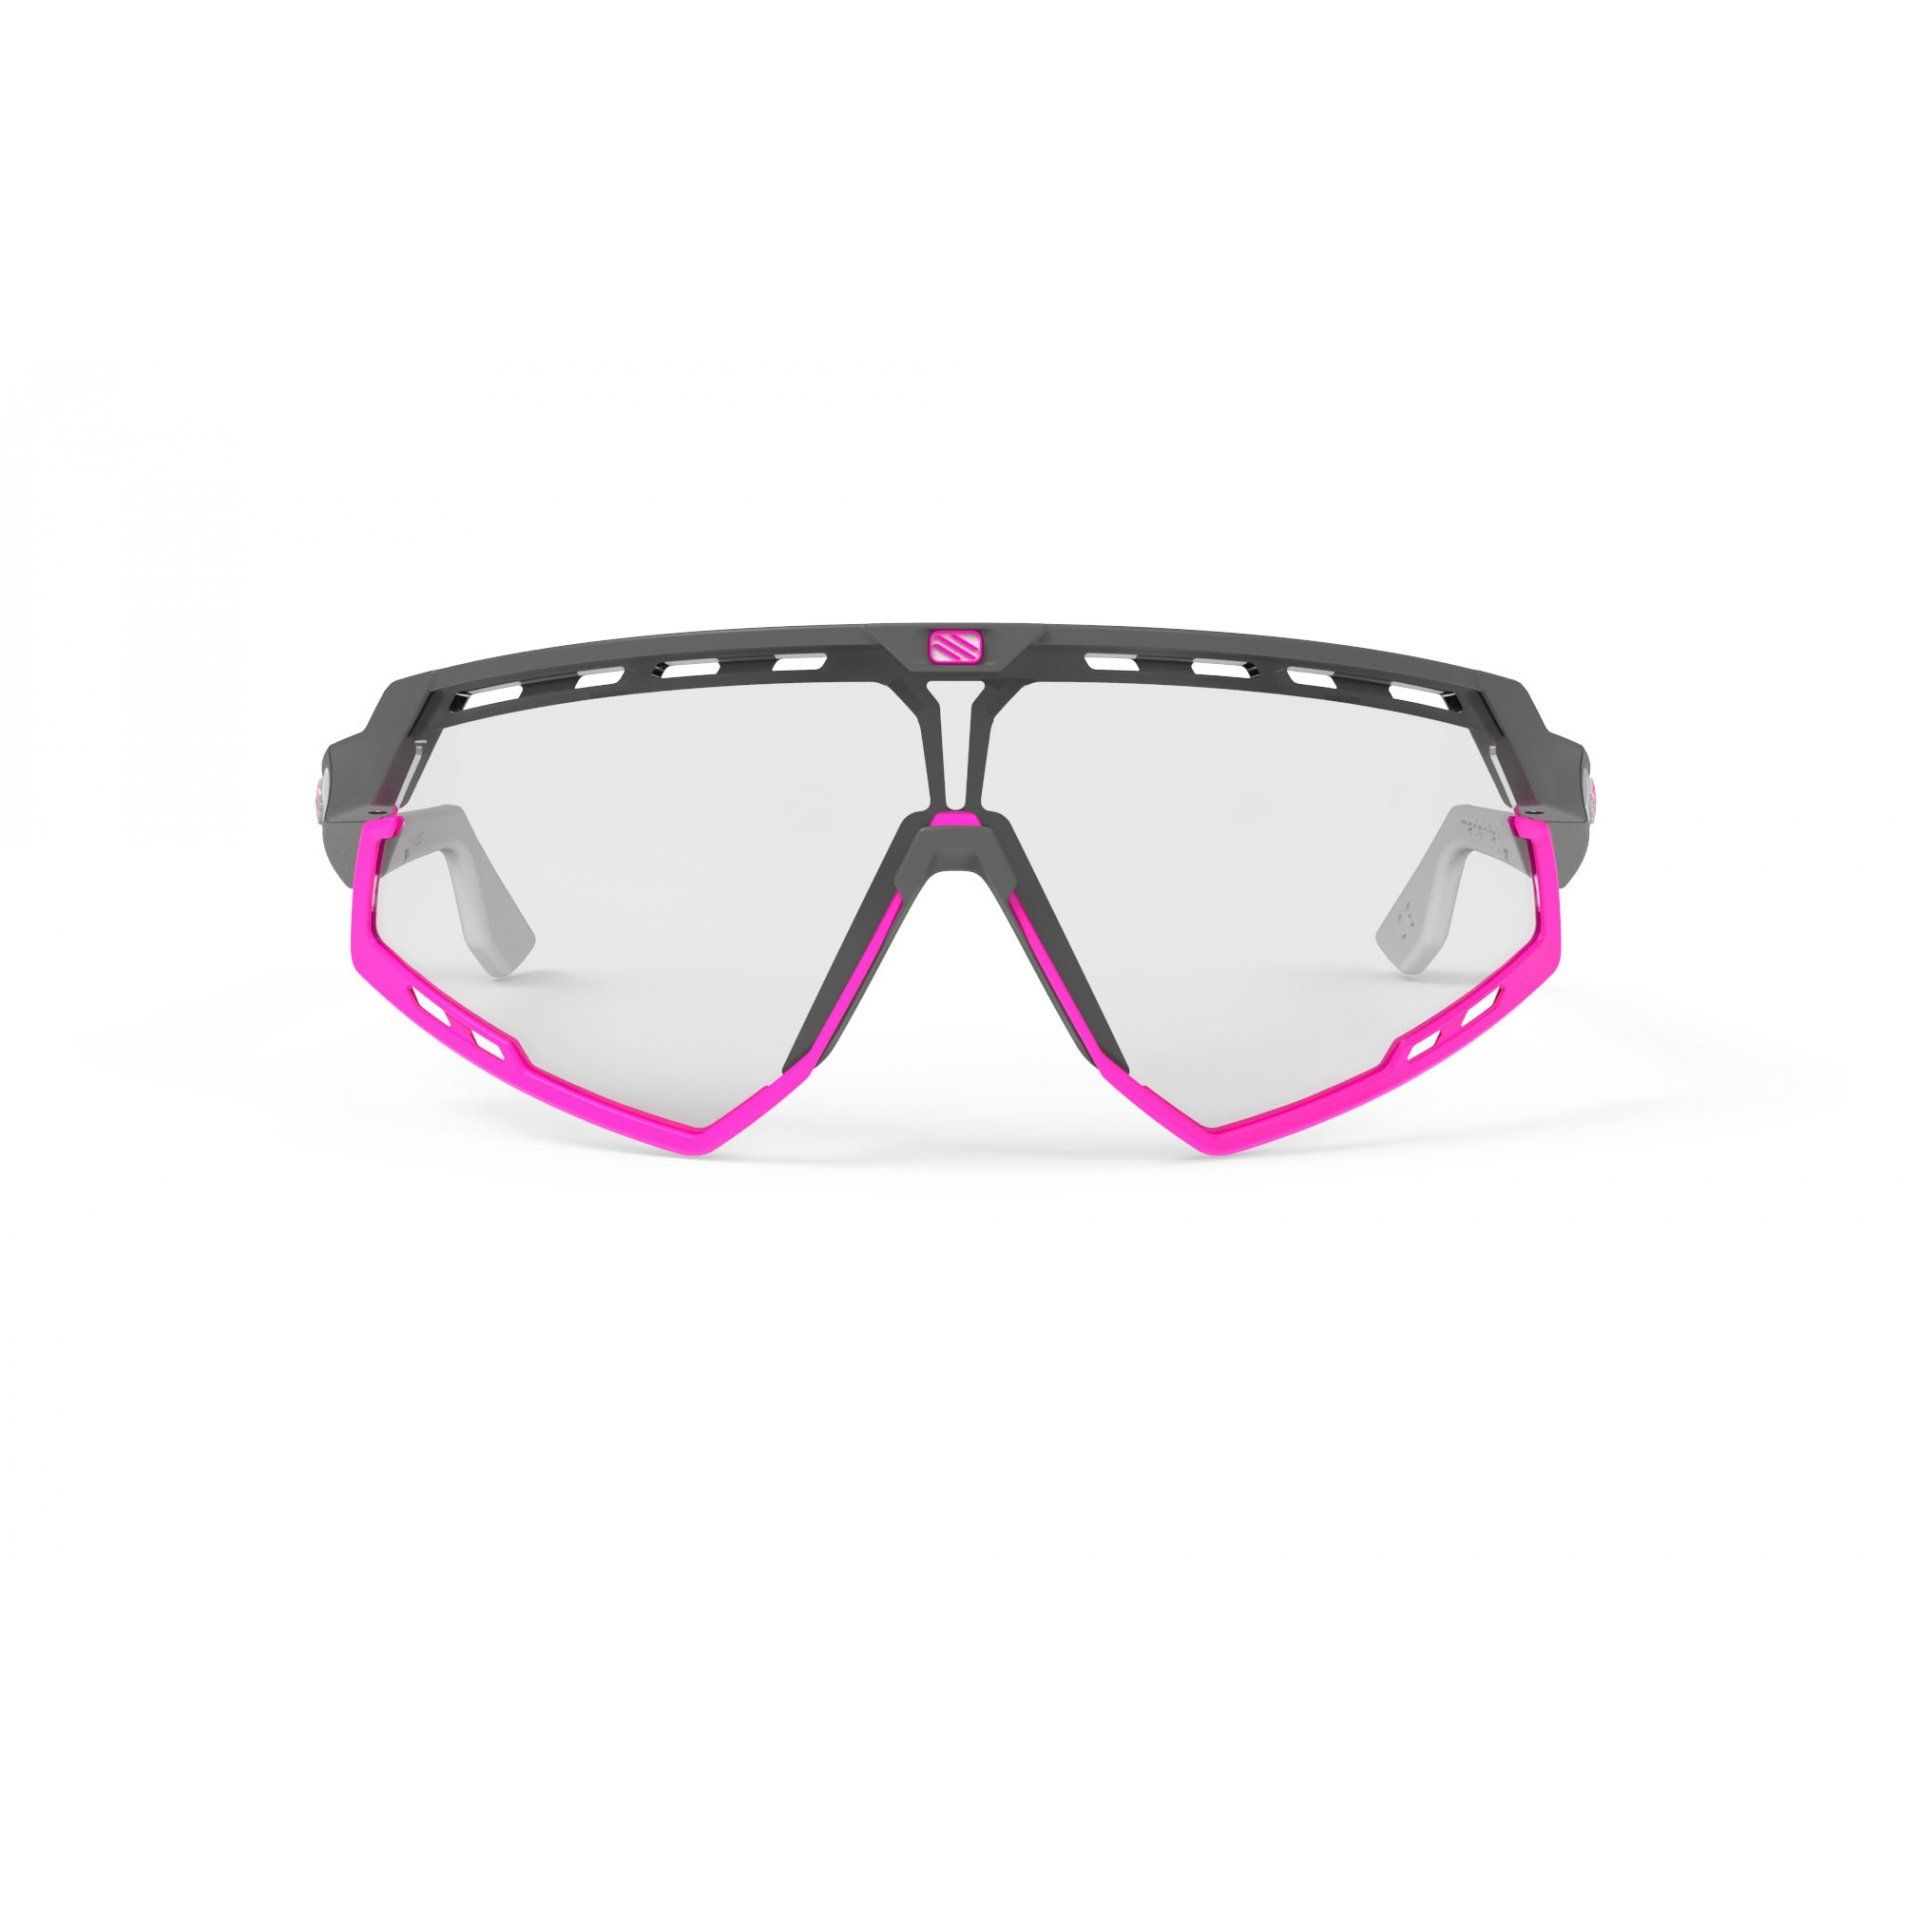 OKULARY RUDY PROJECT DEFENDER PYOMBO MATTE|FUXIA+PHOTOCHROMIC BLACK 2